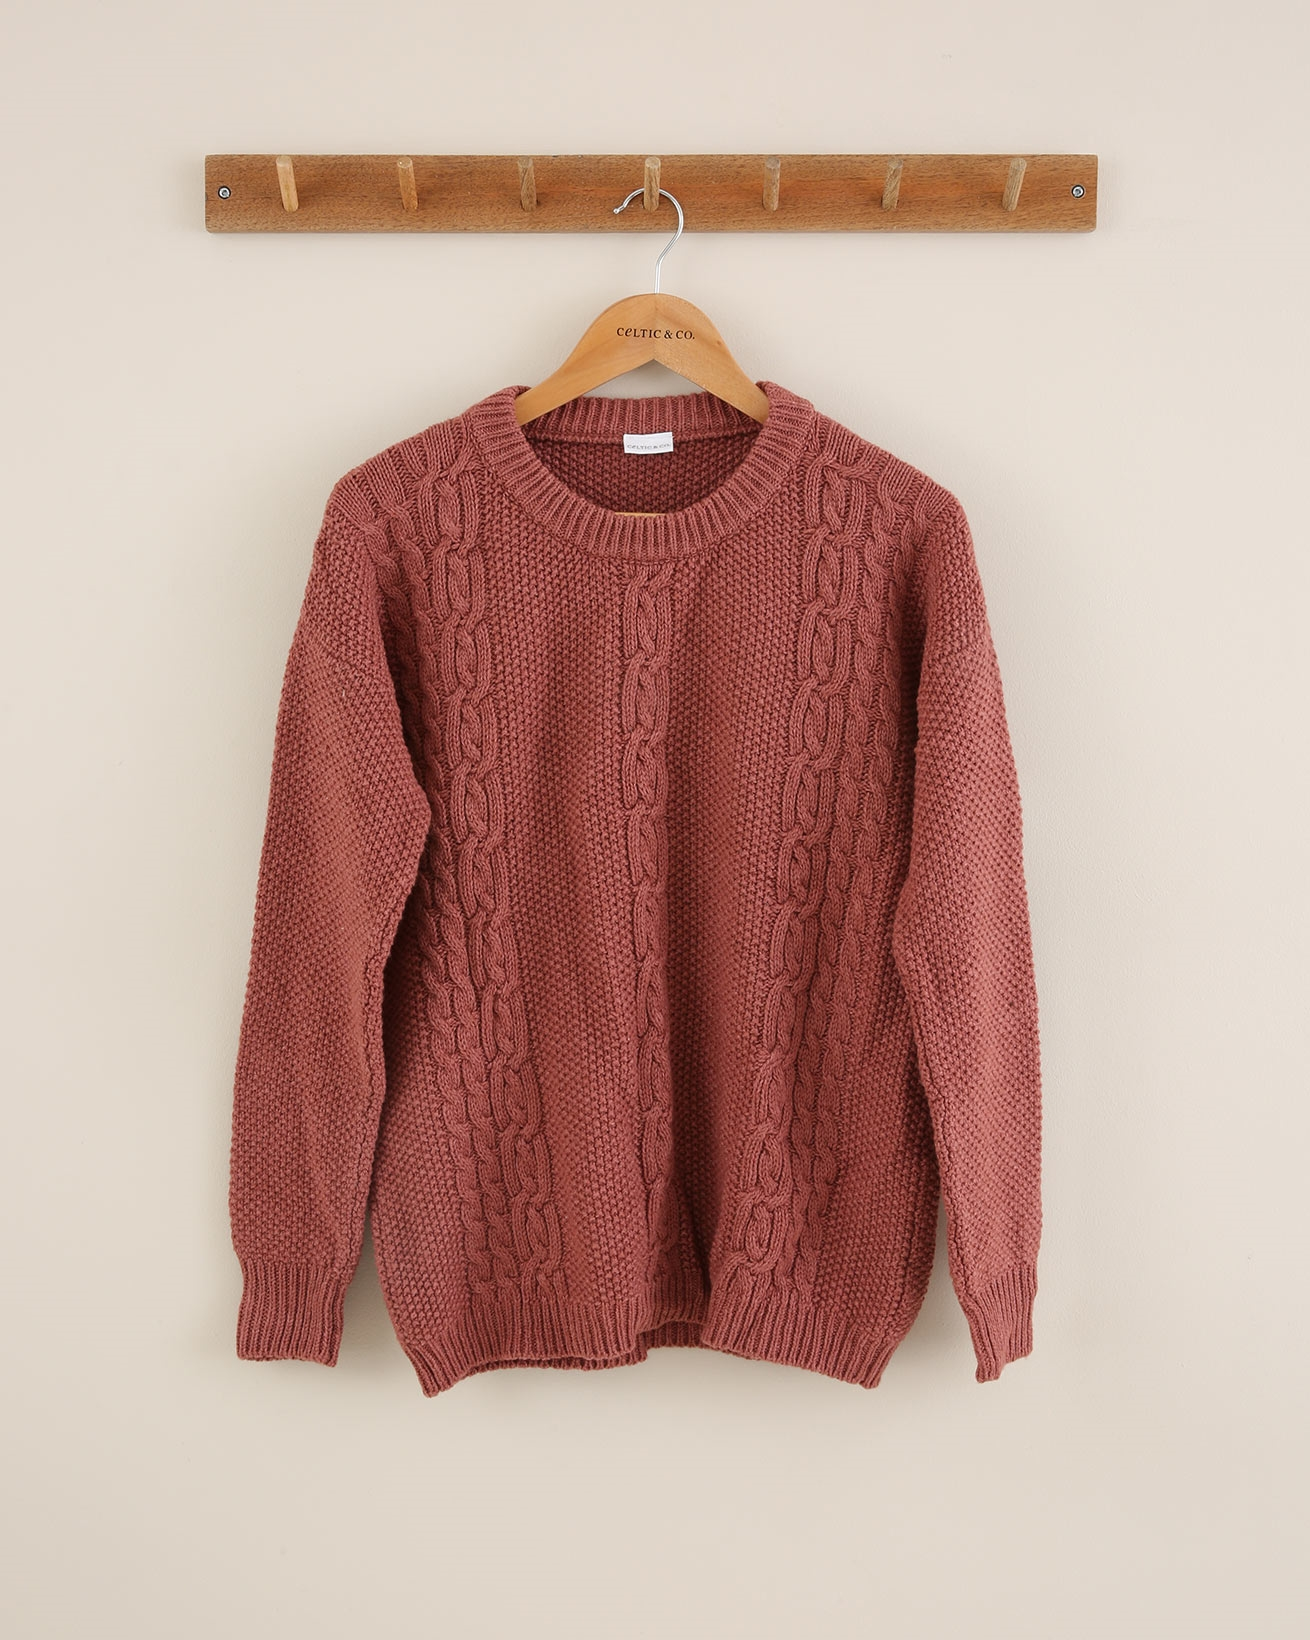 Cable Crew Neck Jumper - Size Small - Antique Rose - 1868